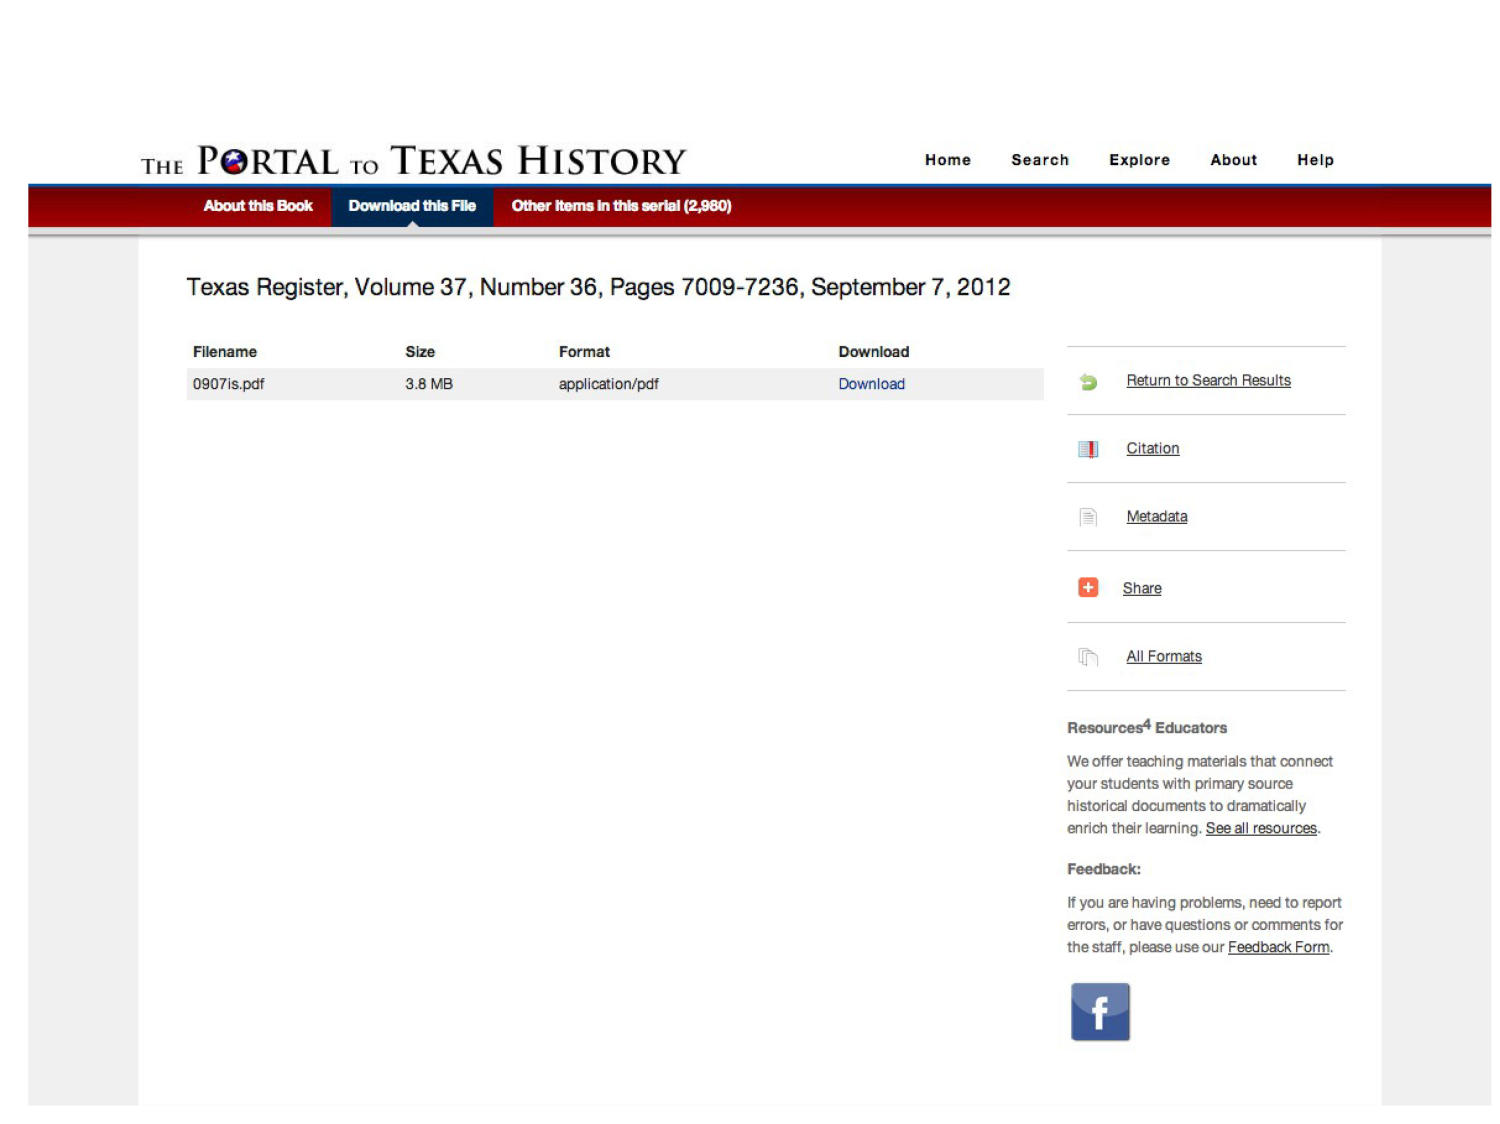 The Portal to Texas History: Technology Overview                                                                                                      [Sequence #]: 20 of 73